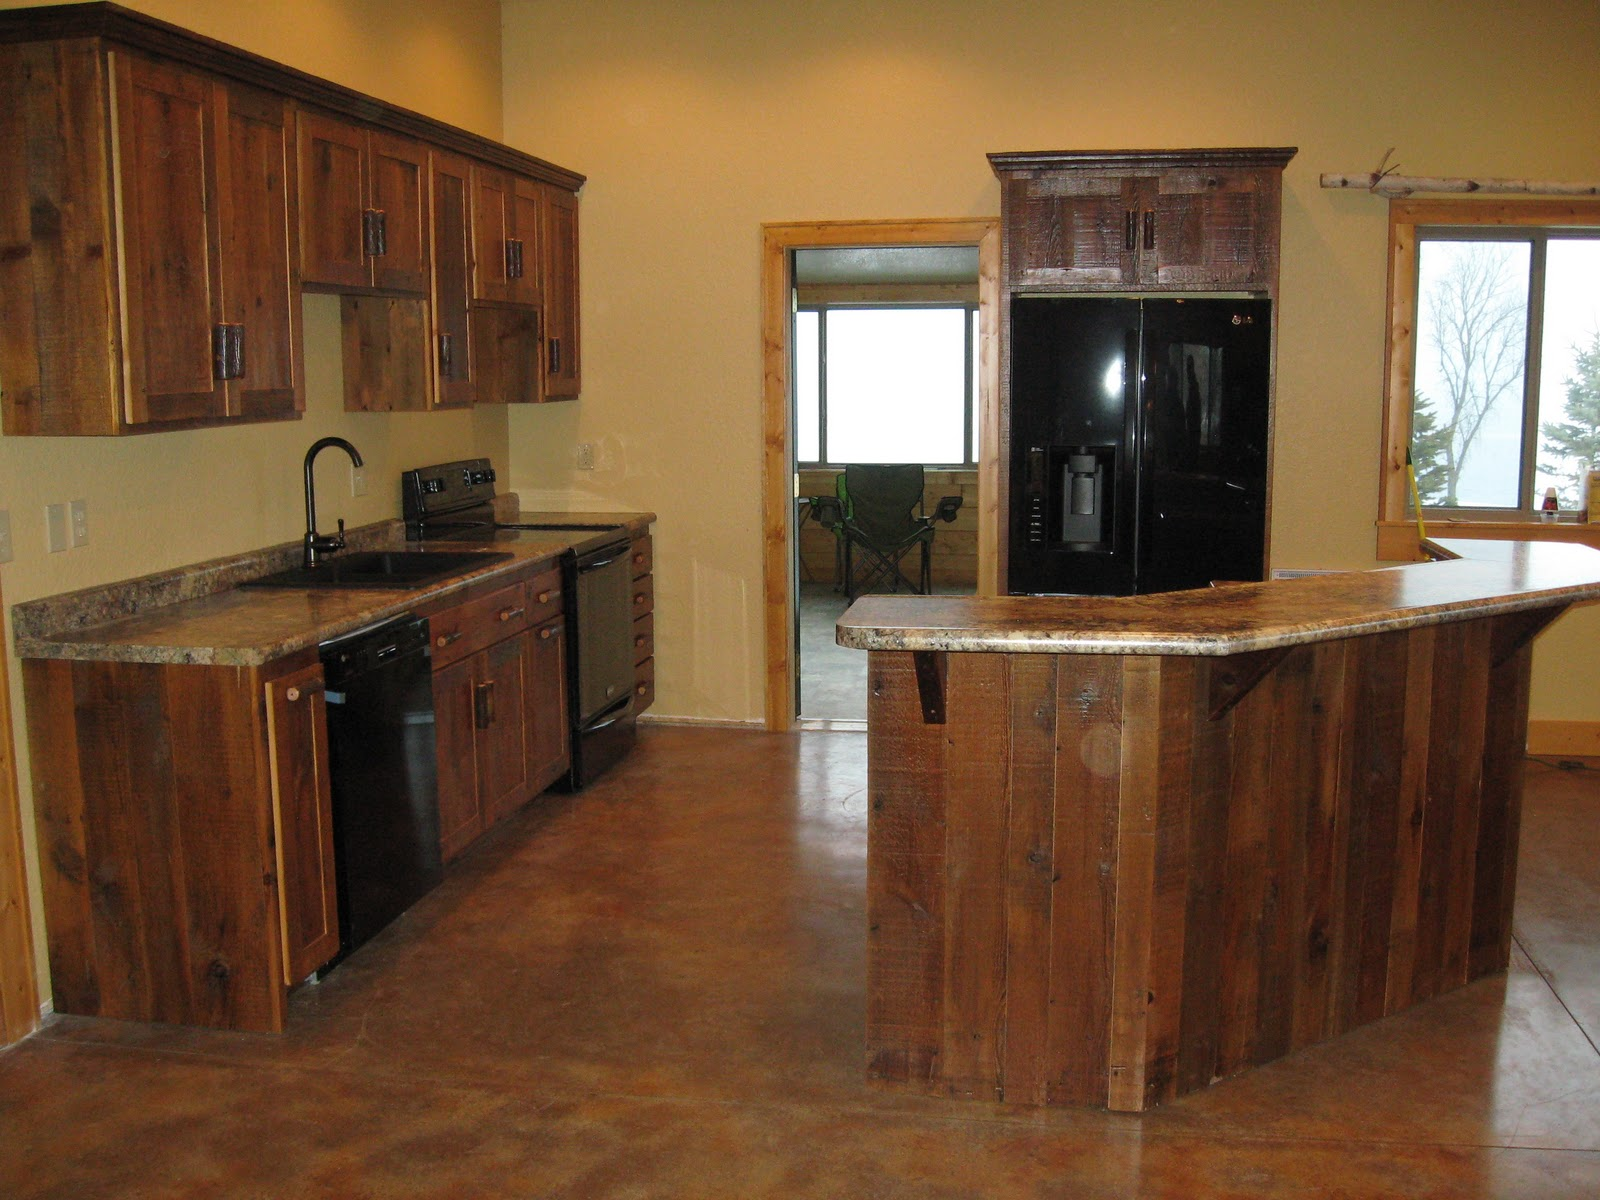 Log Furniture   Barnwood Furniture   Rustic Furniture: Rustic Kitchen  Cabinets Reclaimed Wood Kitchen Cabinets From Barnwood